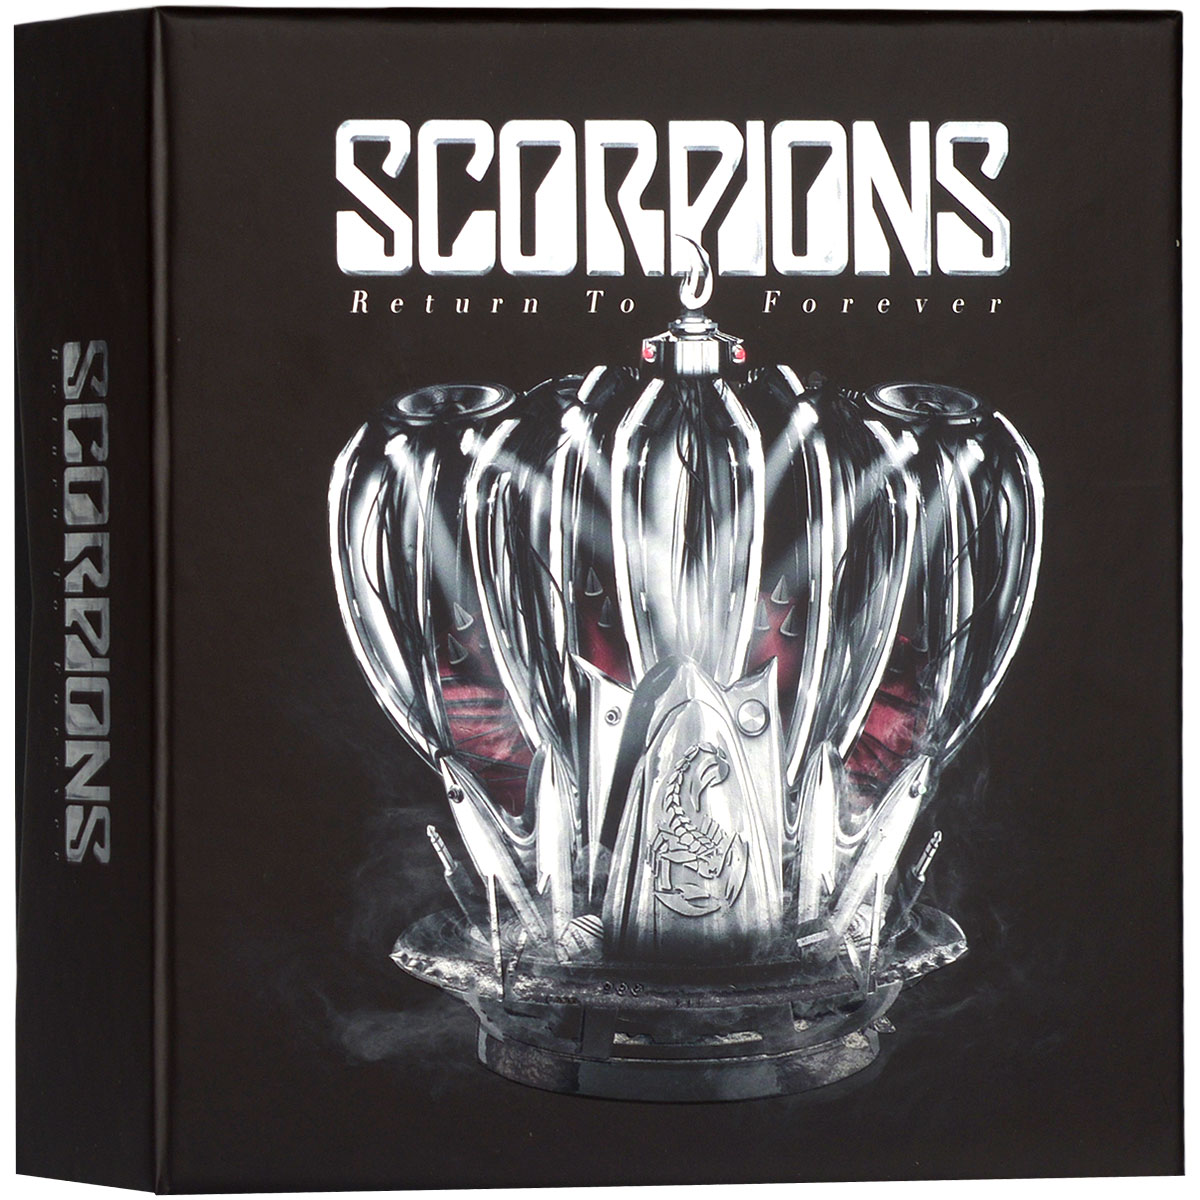 Scorpions Scorpions. Return To Forever. Limited 50th Anniversary Collector'S Box (3 CD + LP) scorpions scorpions born to touch your feelings best of rock ballads 2 lp colour